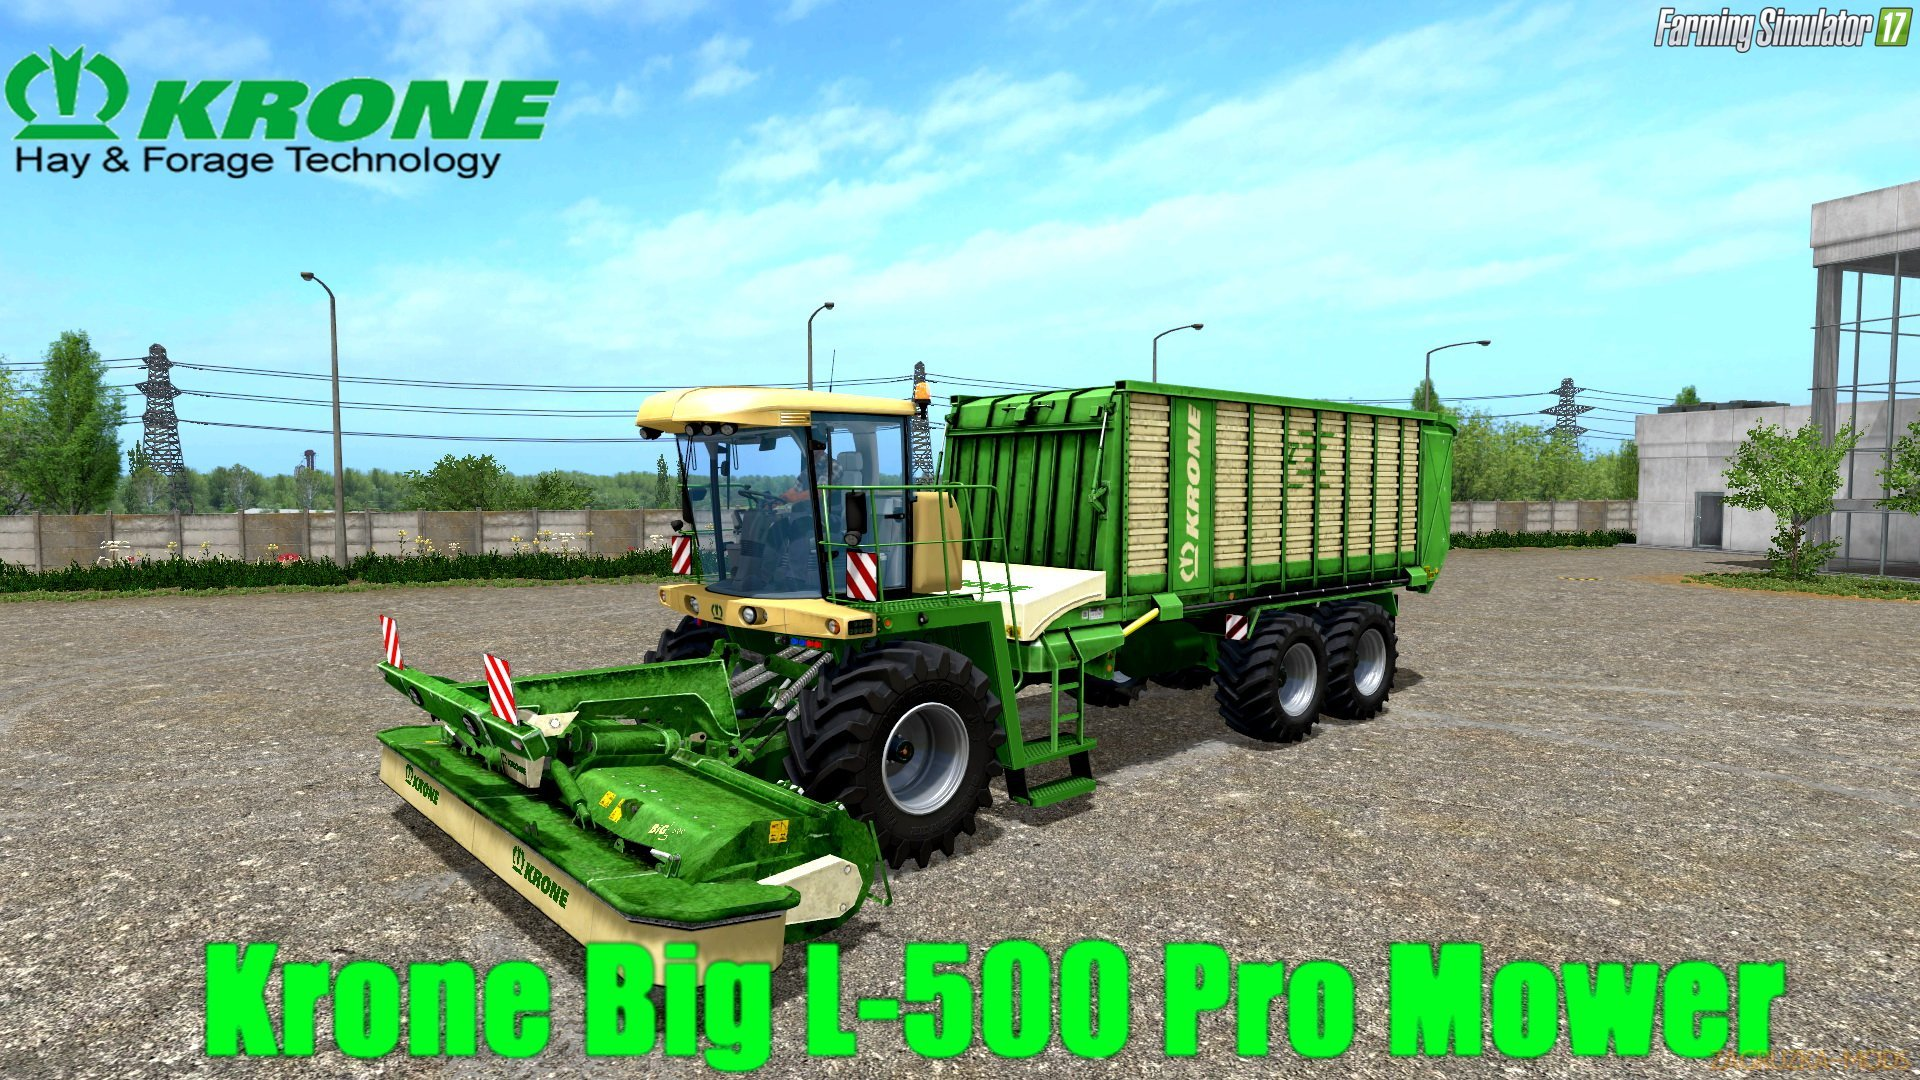 Krone Big L-500 Pro Mower v1.0 for FS 17